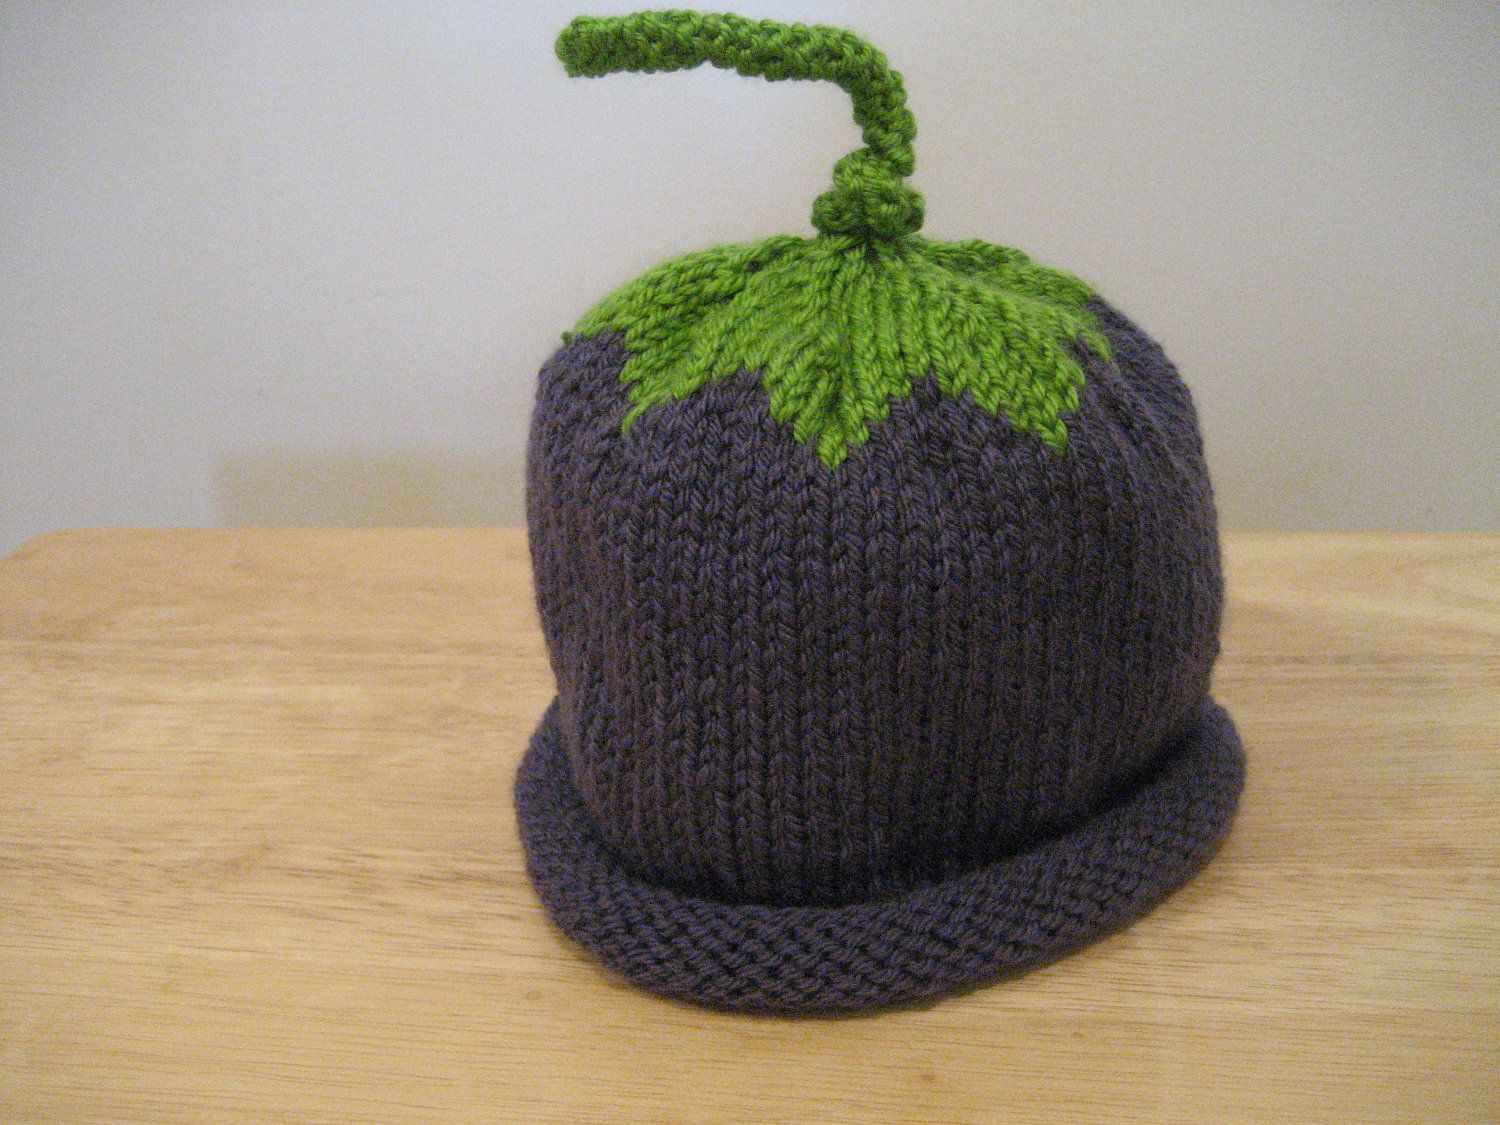 Toddler Plum Hat Knitted  Free Shipping With Purchase Of Another Item (18.00 USD) by knitsbygramma